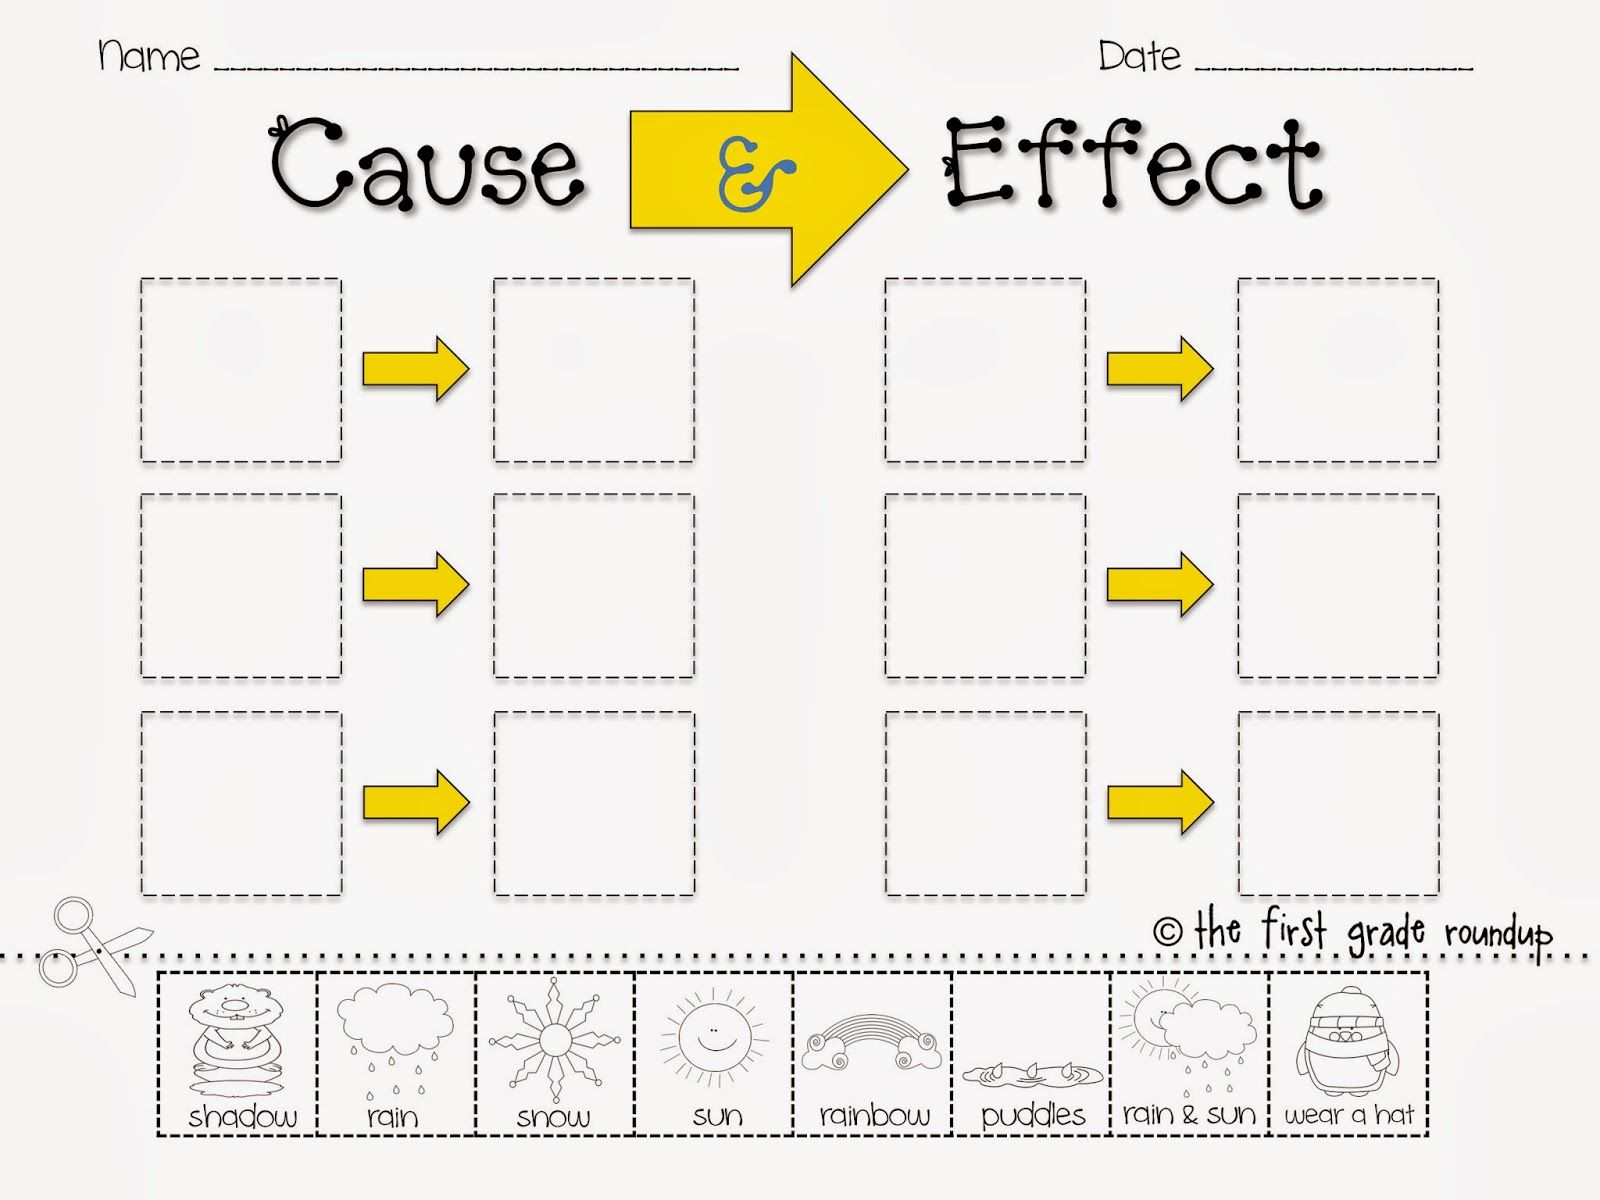 worksheet Cause And Effect Worksheets For 4th Grade cause effect sort freebie thefirstgraderoundup blogspot com water cycle collaborative posters are a great way to show off what weve learned about and effect